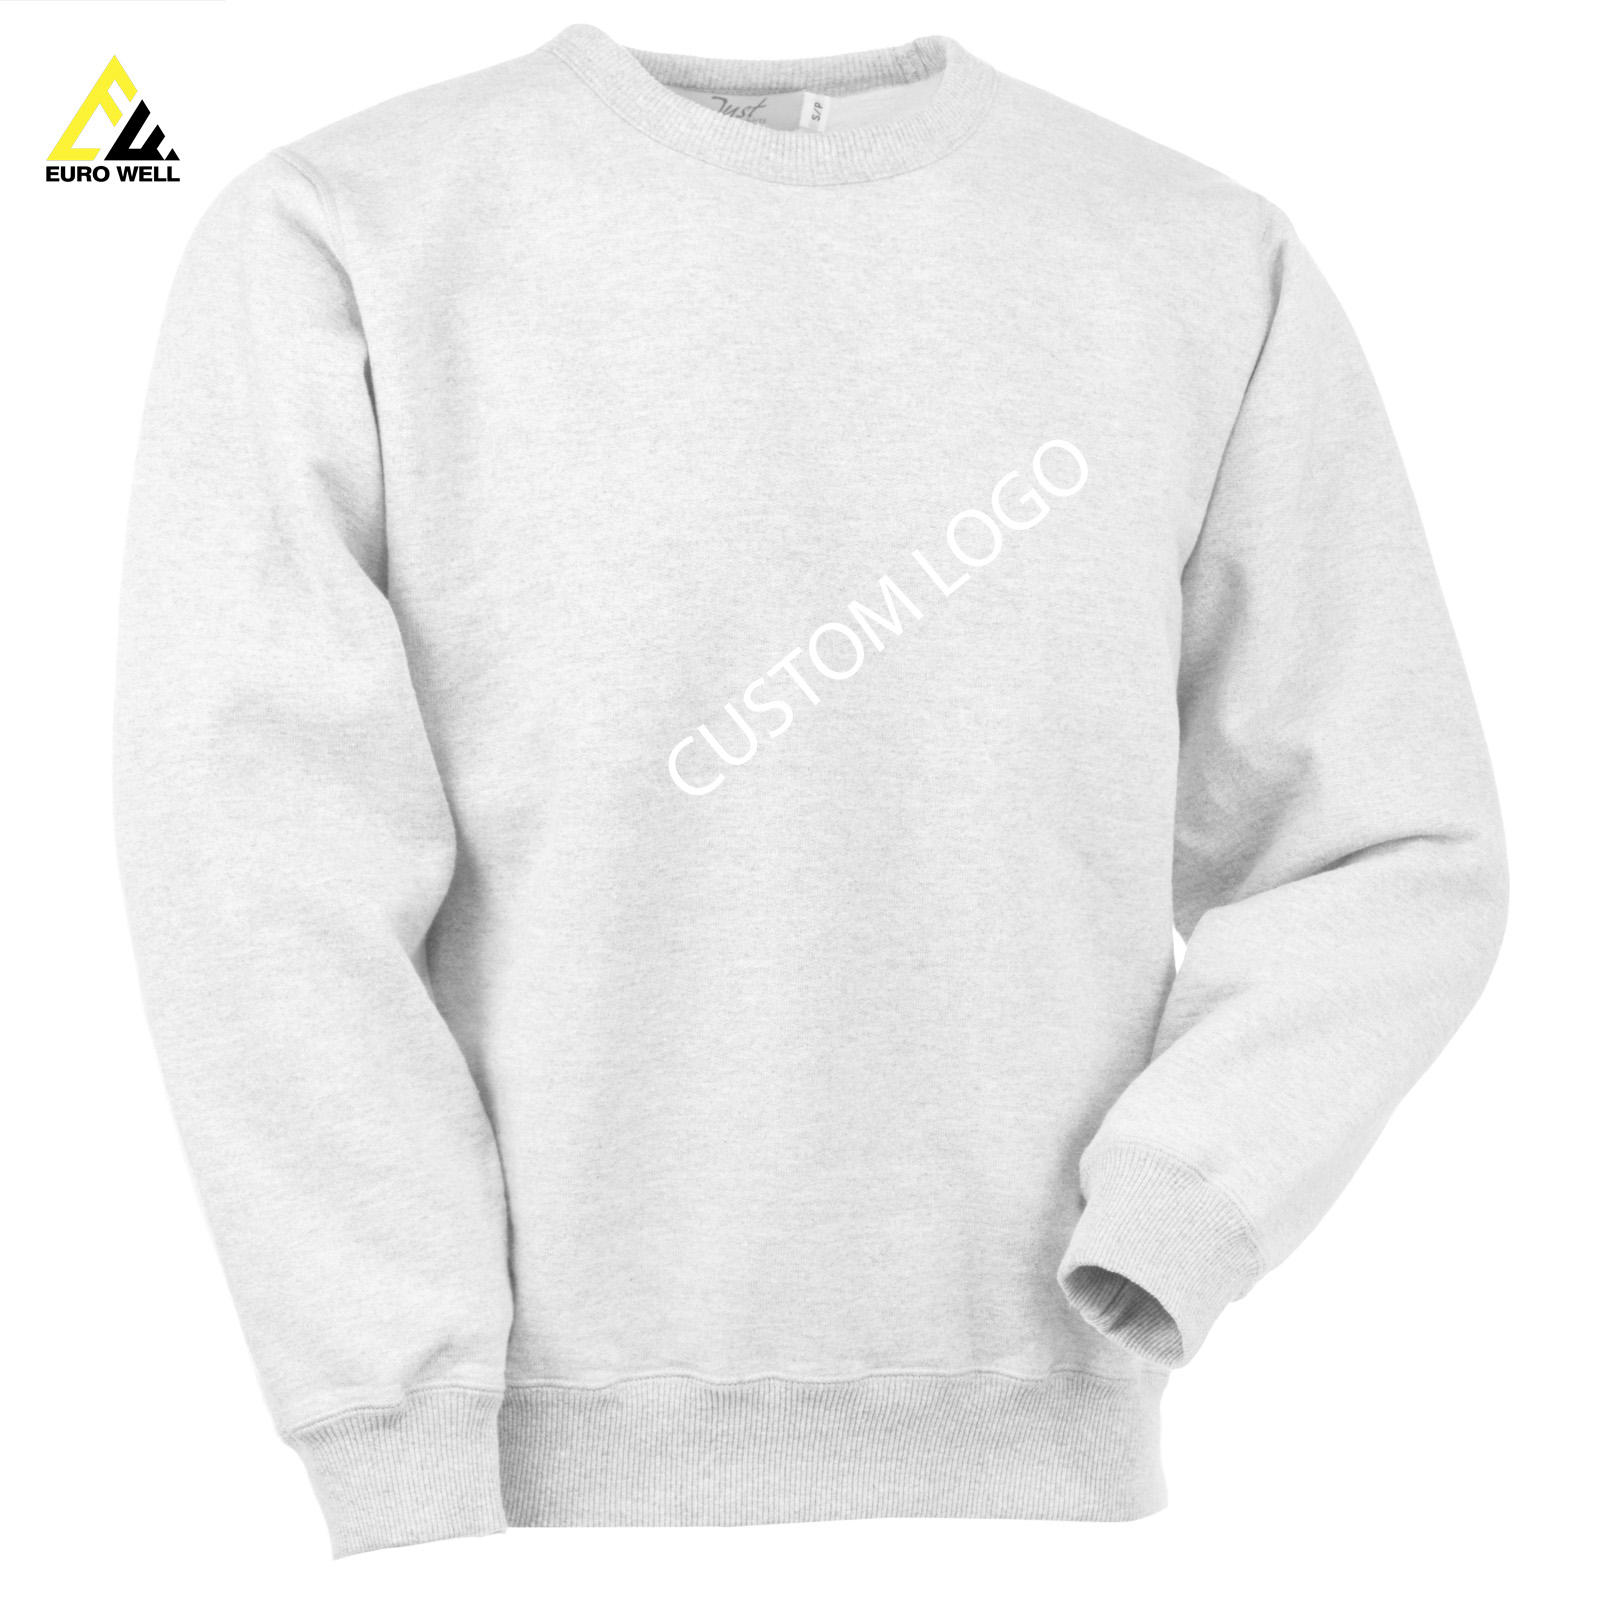 Hot Pro quality Design OEM Custom Made Plain sweat shirt